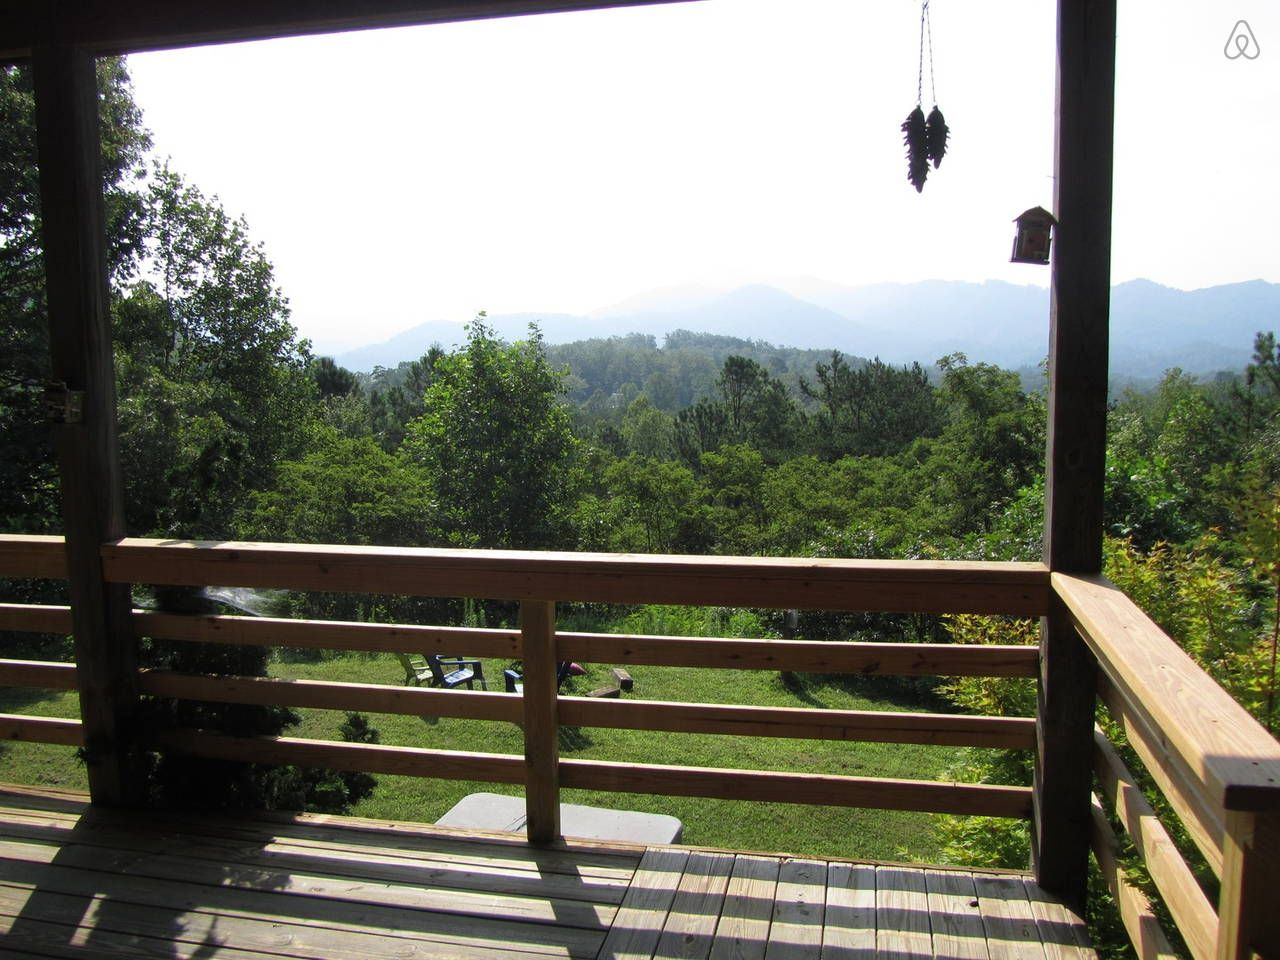 Pin By Gwen Swanson On Best Of Airbnb Secluded Cabin Bryson City Cabin